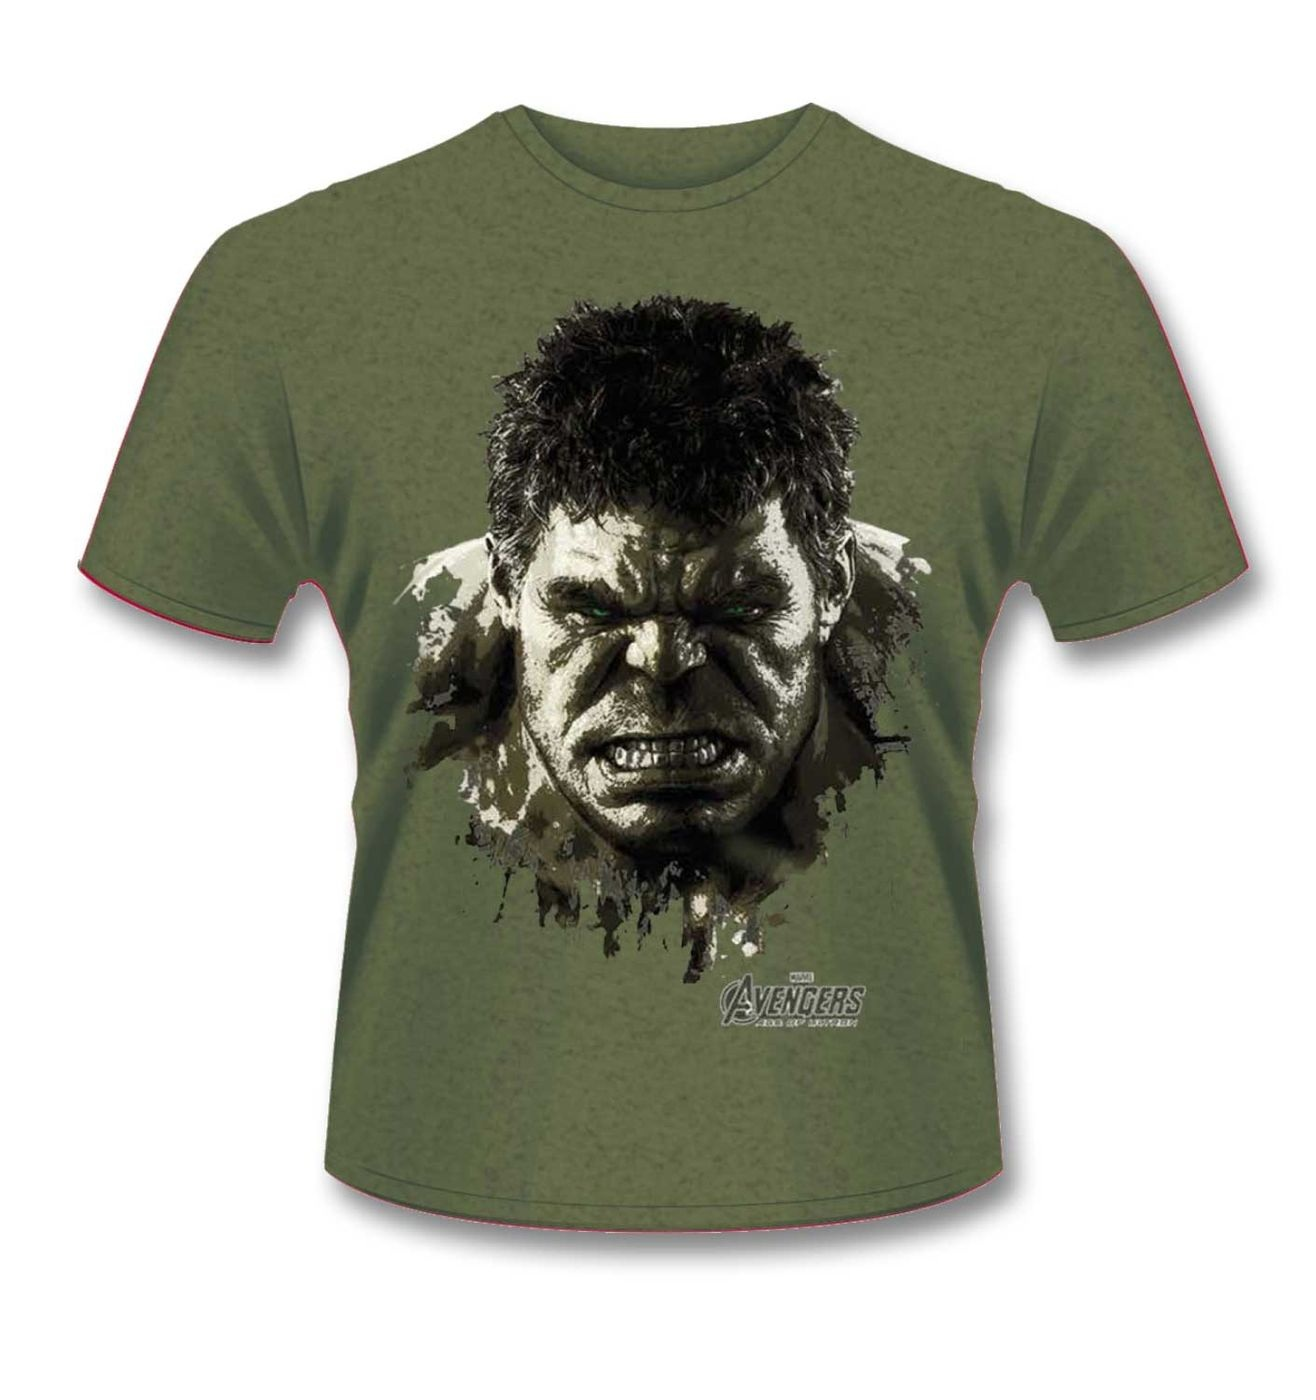 Hulk t-shirt - Official Avengers: Age Of Ultron Incredible Hulk tee